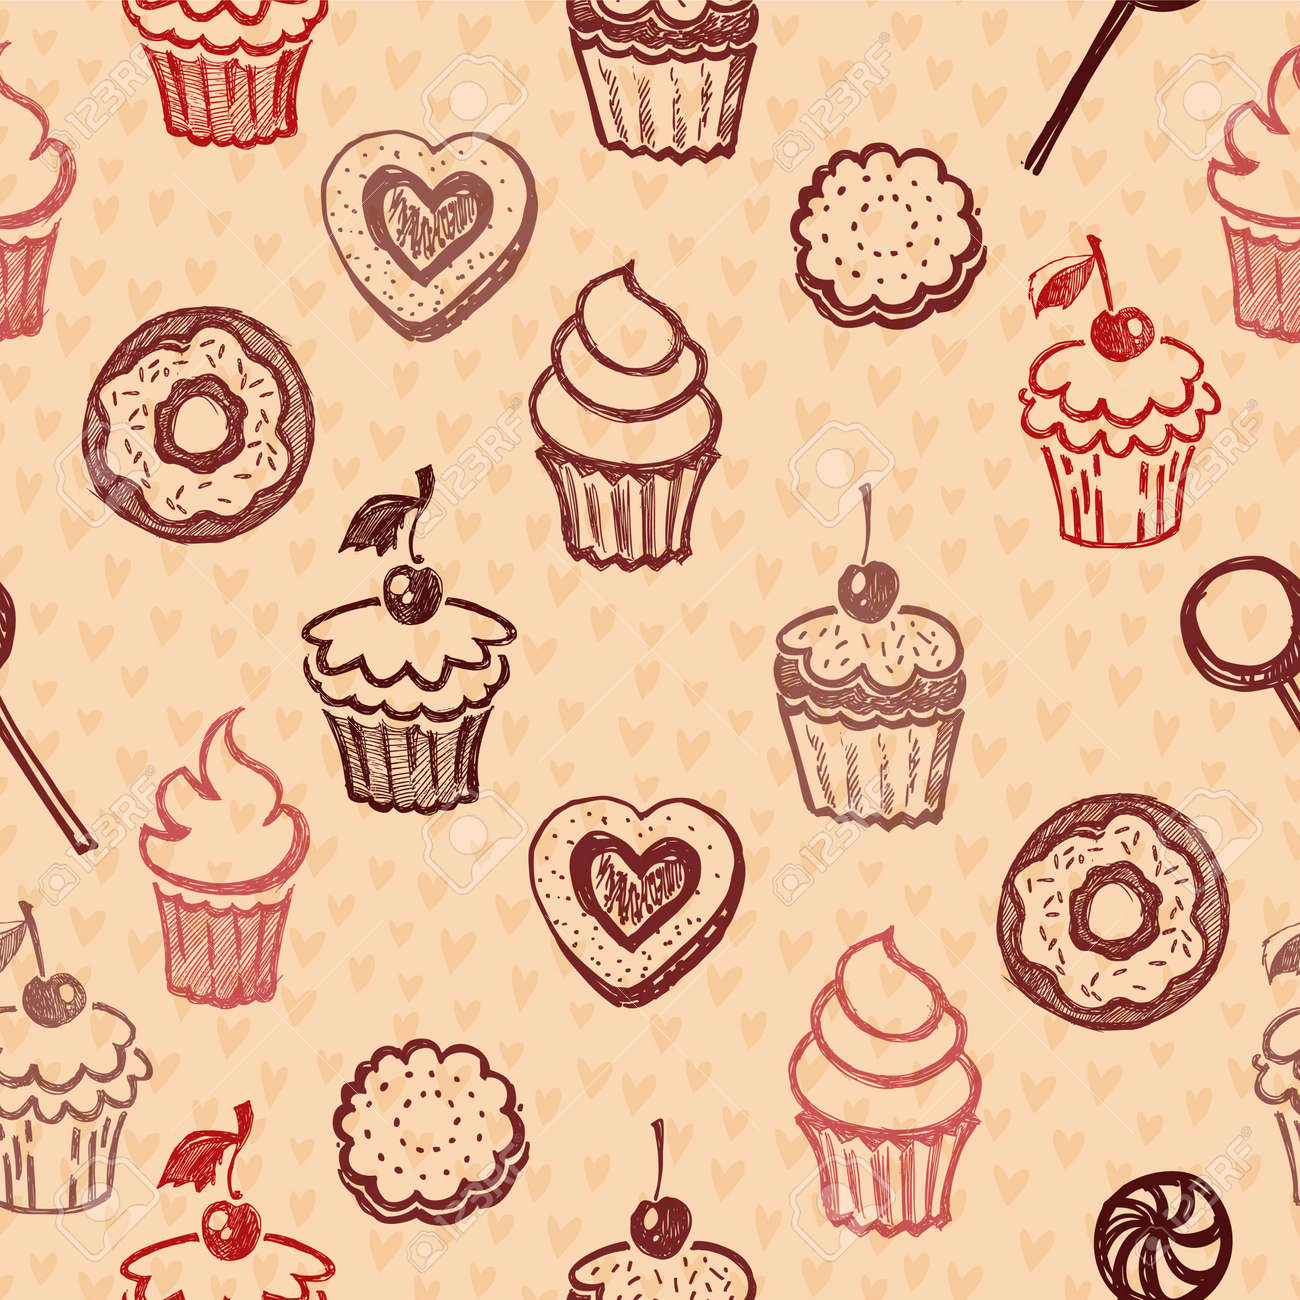 Seamless texture sweets, donut, biscuit on the background of polka dots - 25117934